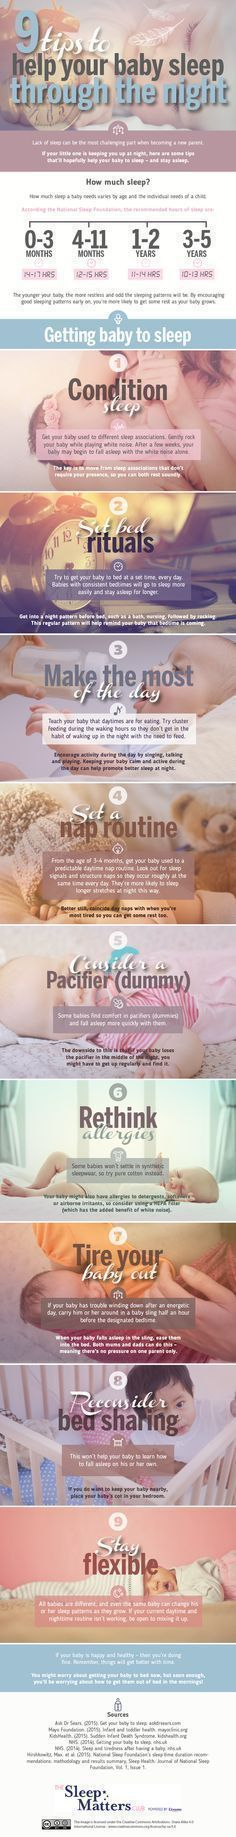 9 Tips To Help Your Baby Sleep Through The Night - Lack of sleep can often be the most challenging part of becoming a new parent, so Dreams has produced this list of tips and advice to help babies - and parents - get as much quality sleep as possible duri #babycaretips